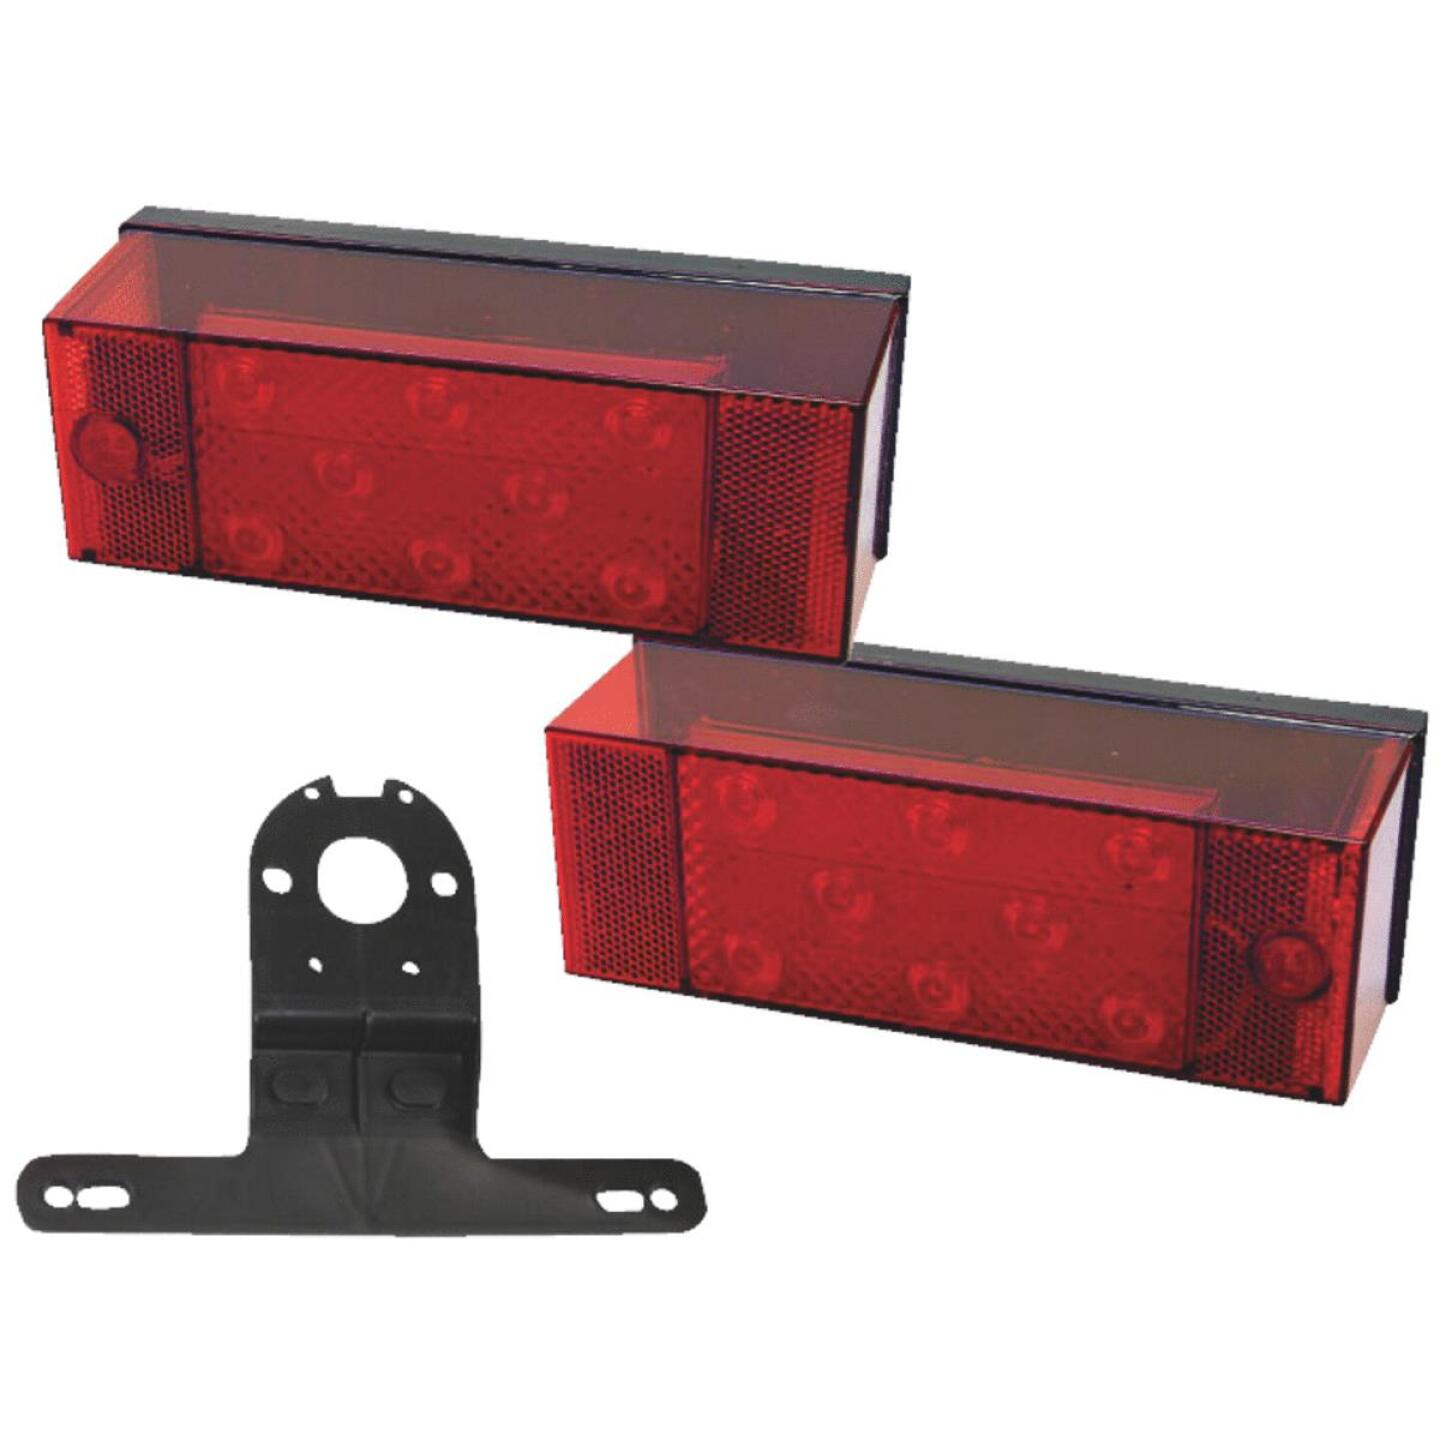 Peterson 80 In. Wide and Over LED Trailer Light Kit Image 1